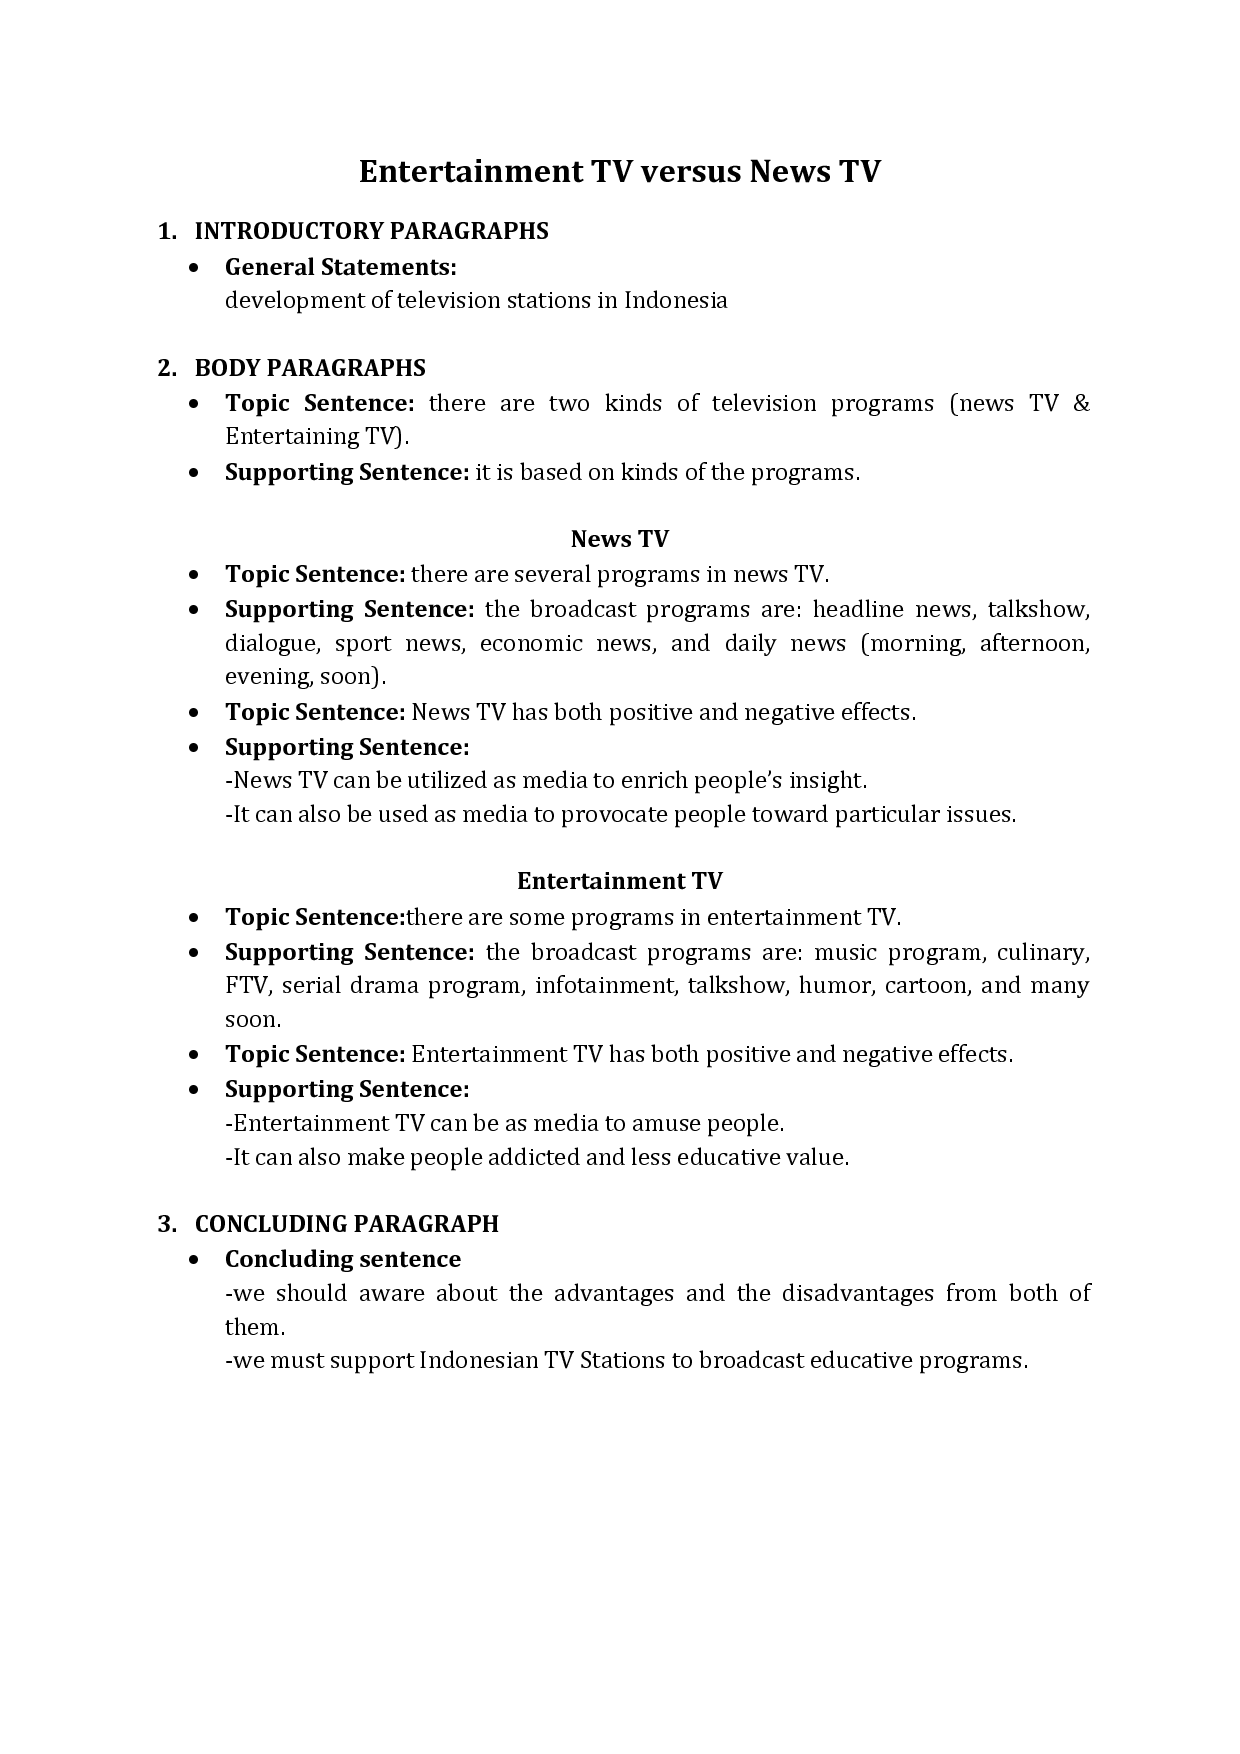 005 Fbunmxinib How To Write An Essay Outline Excellent Pdf For University Full